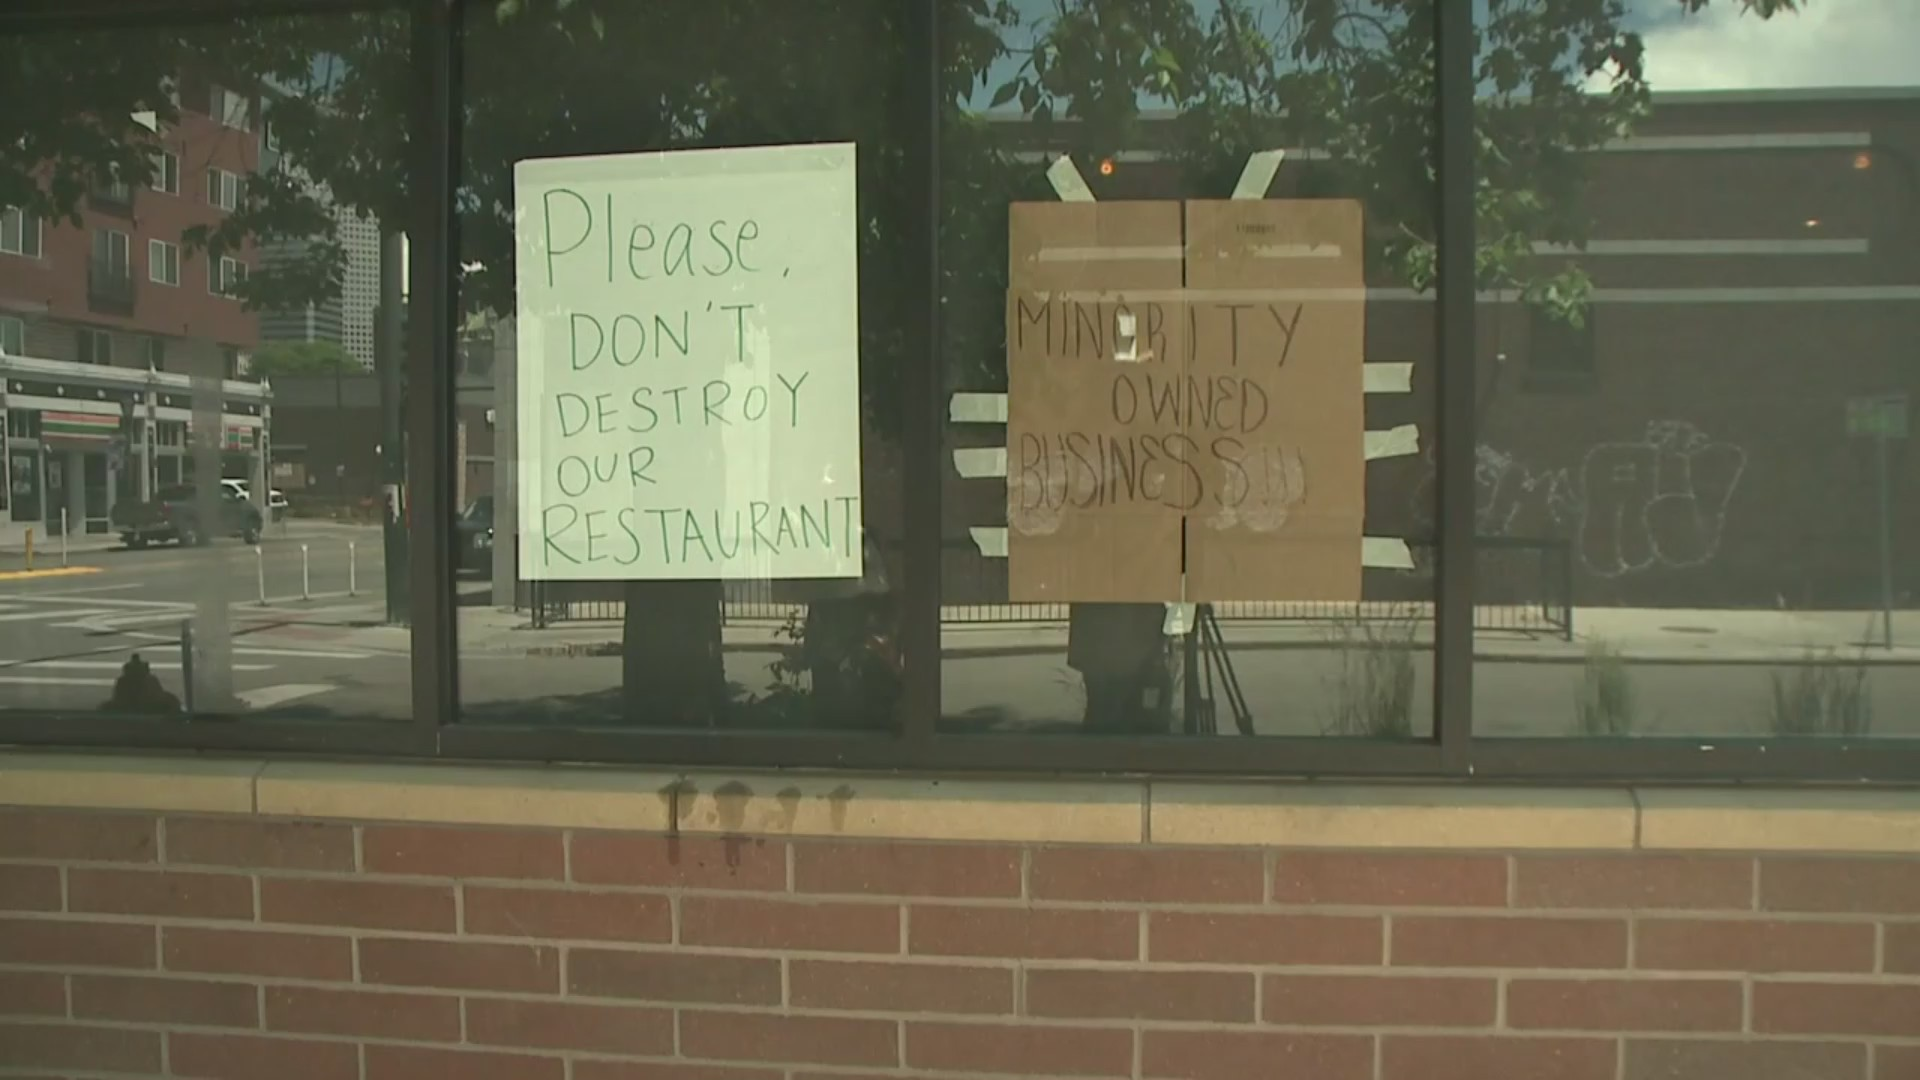 'Please don't destroy our restaurant': Minority business owner pleads with Denver rioters